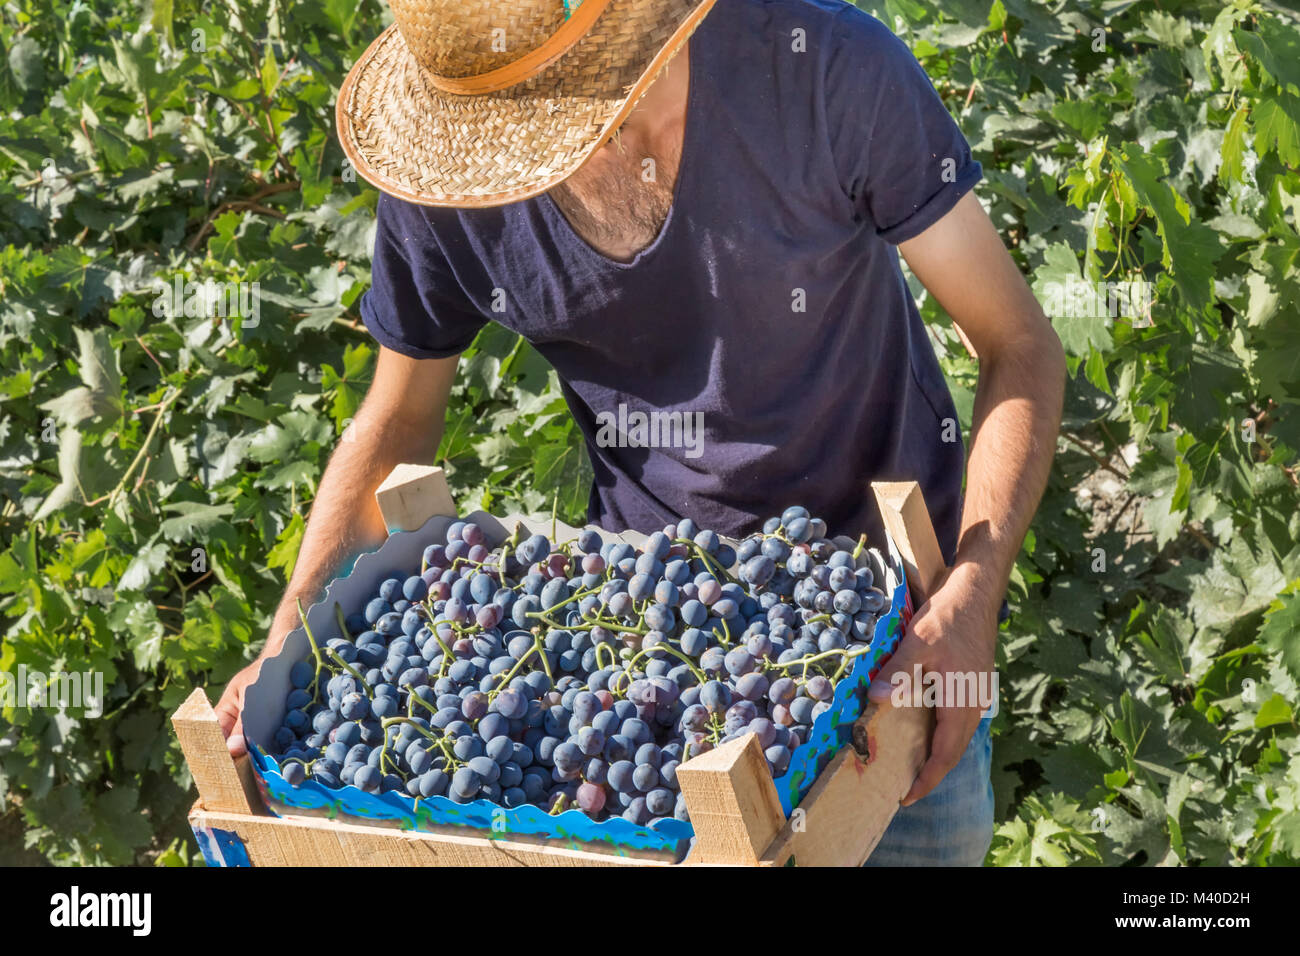 Unidentified man holds crate of grapes at harvesting in the vineyard. - Stock Image